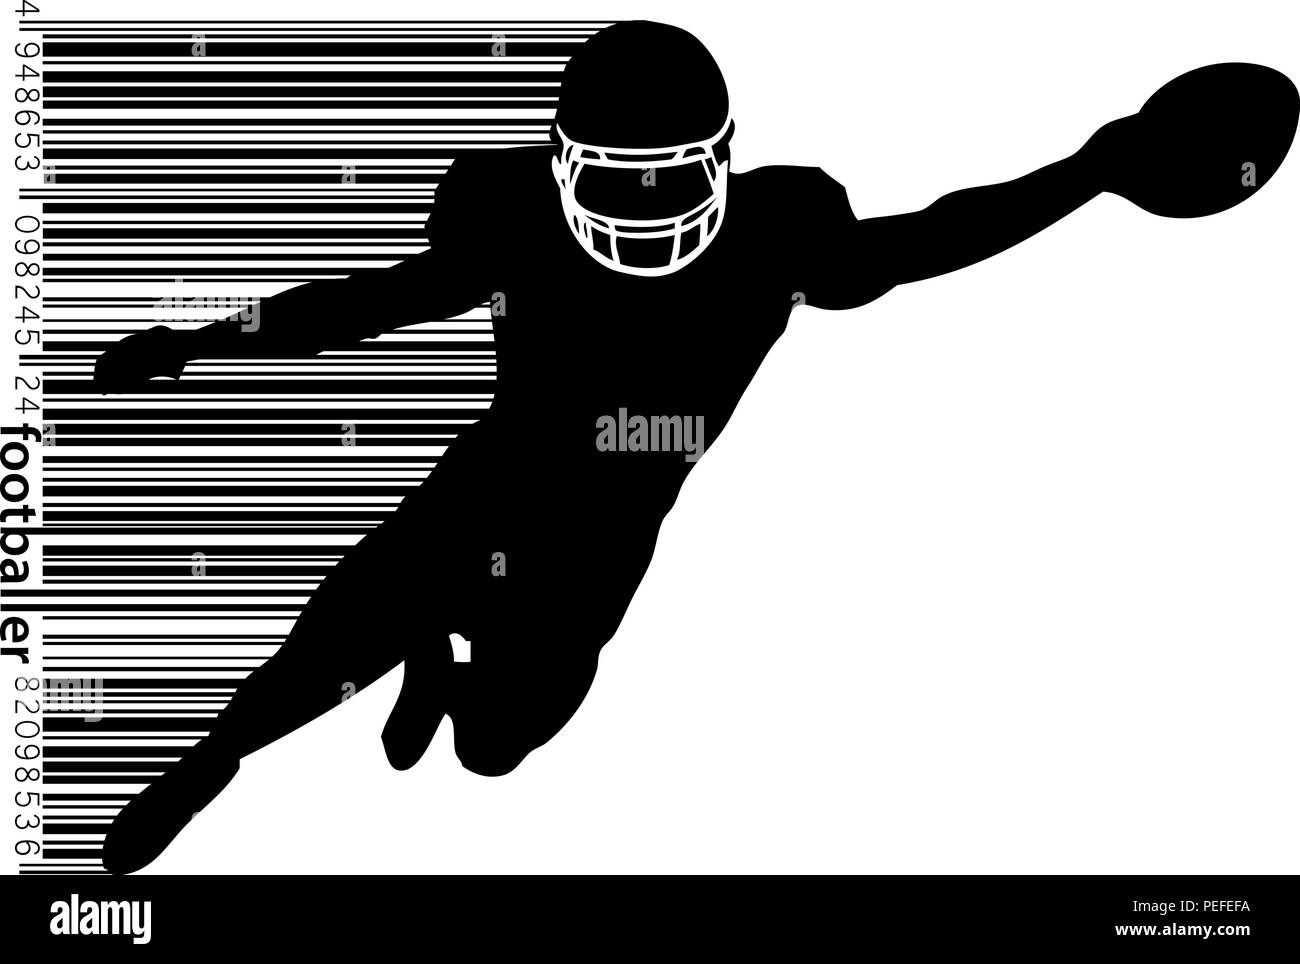 silhouette of a football player and barcode. Rugby. American footballer - Stock Image